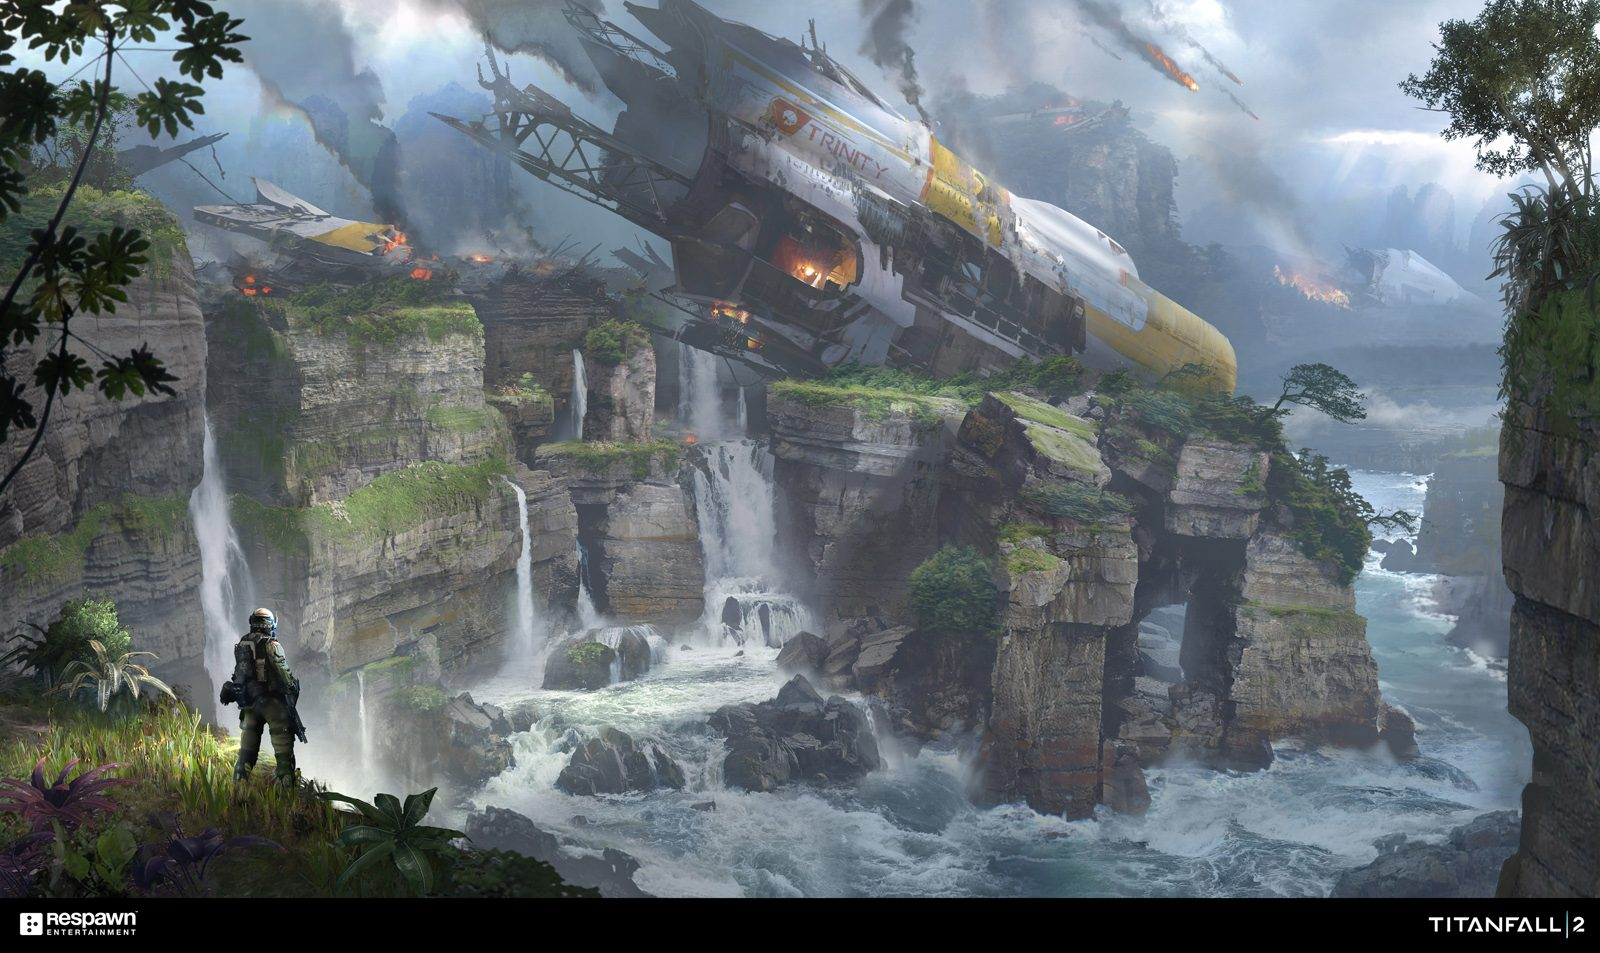 50 Concept Art made for Titanfall 2